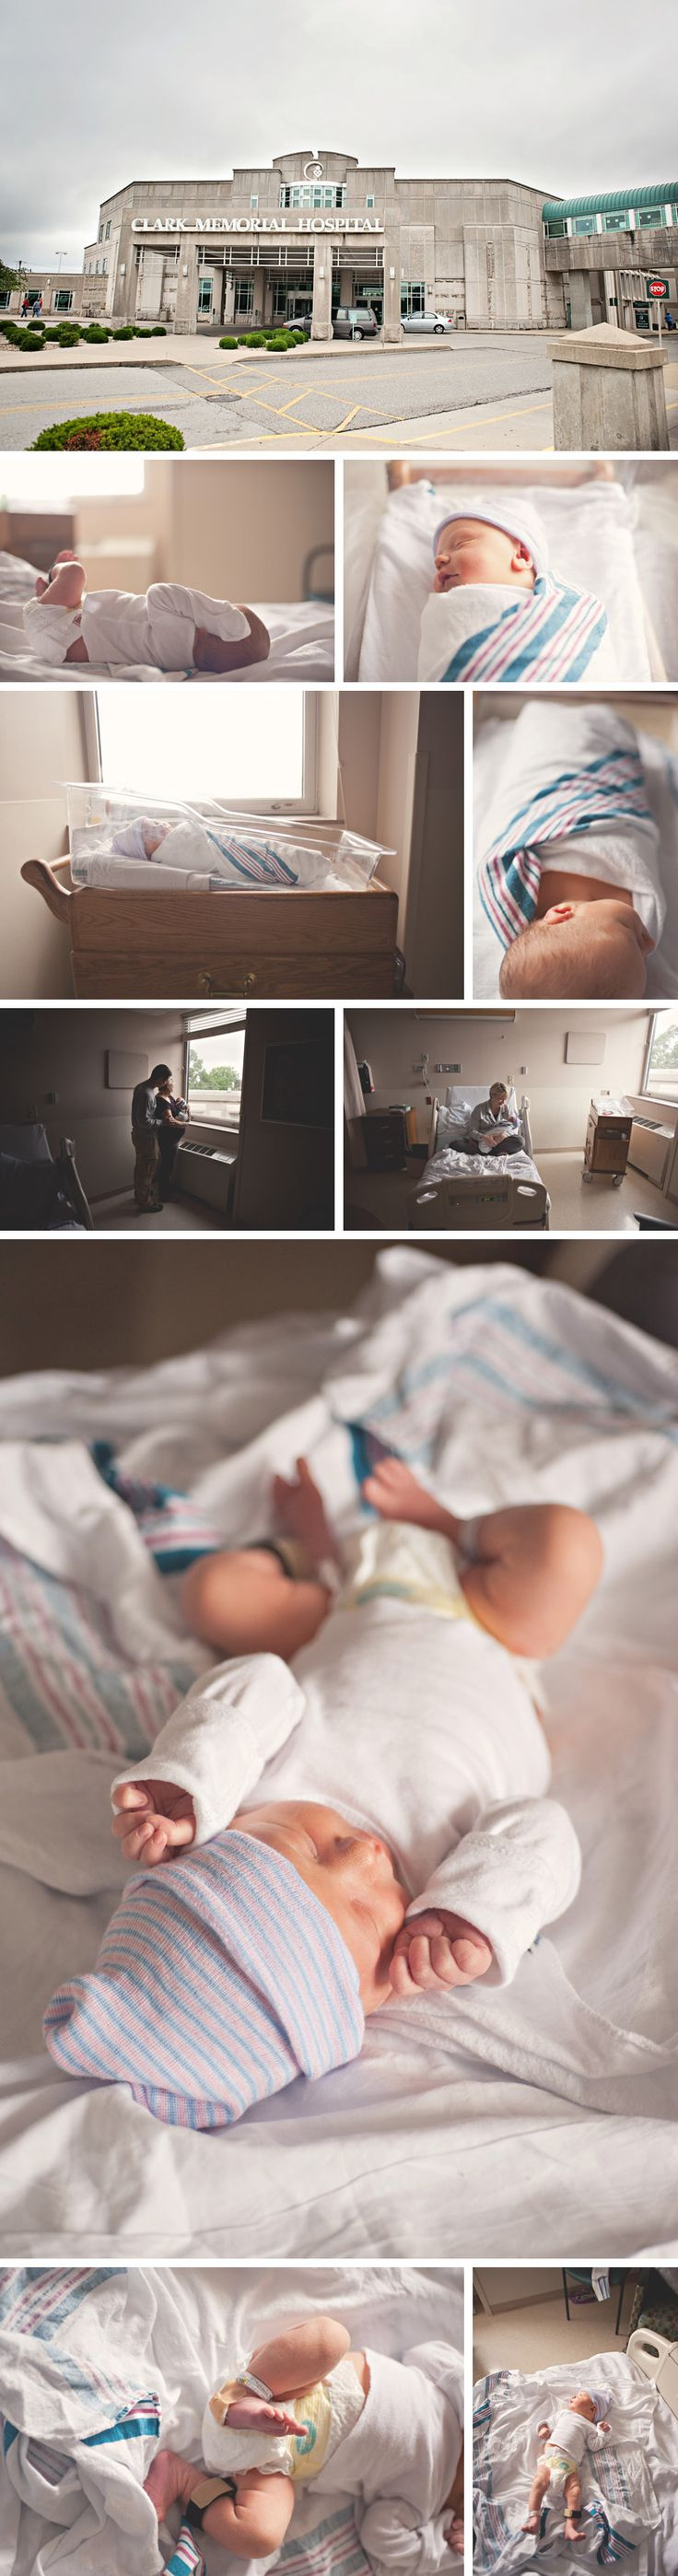 Hospital Newborn Photo Session